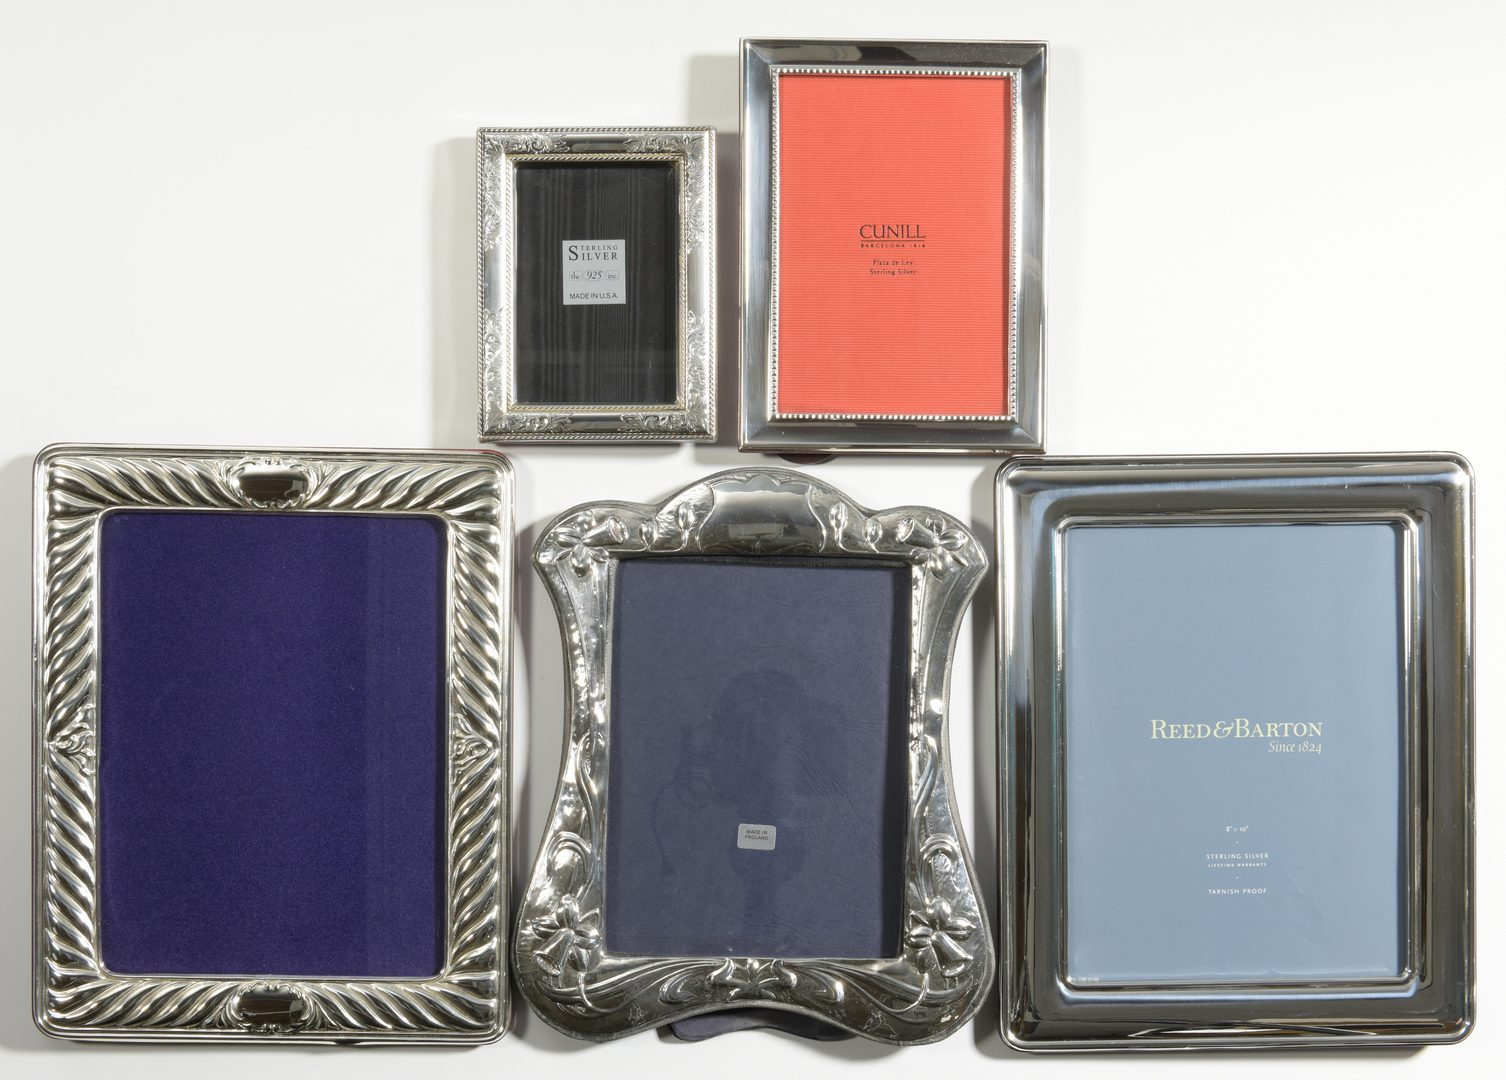 Lot 856: 5 Sterling Frames, including Reed Barton, Cunill